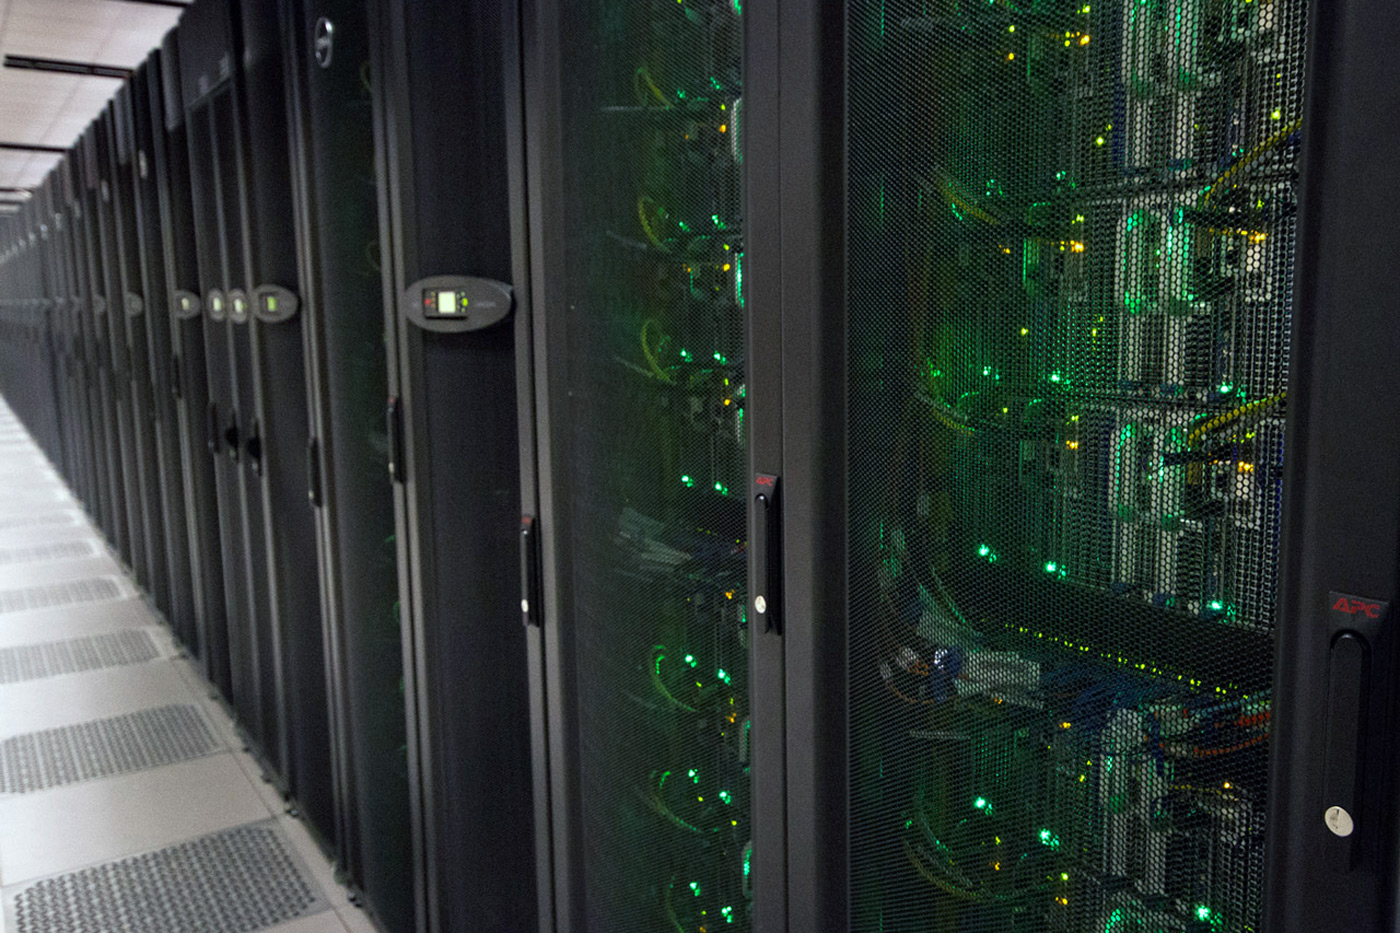 university-of-texas-supercomputer.jpg